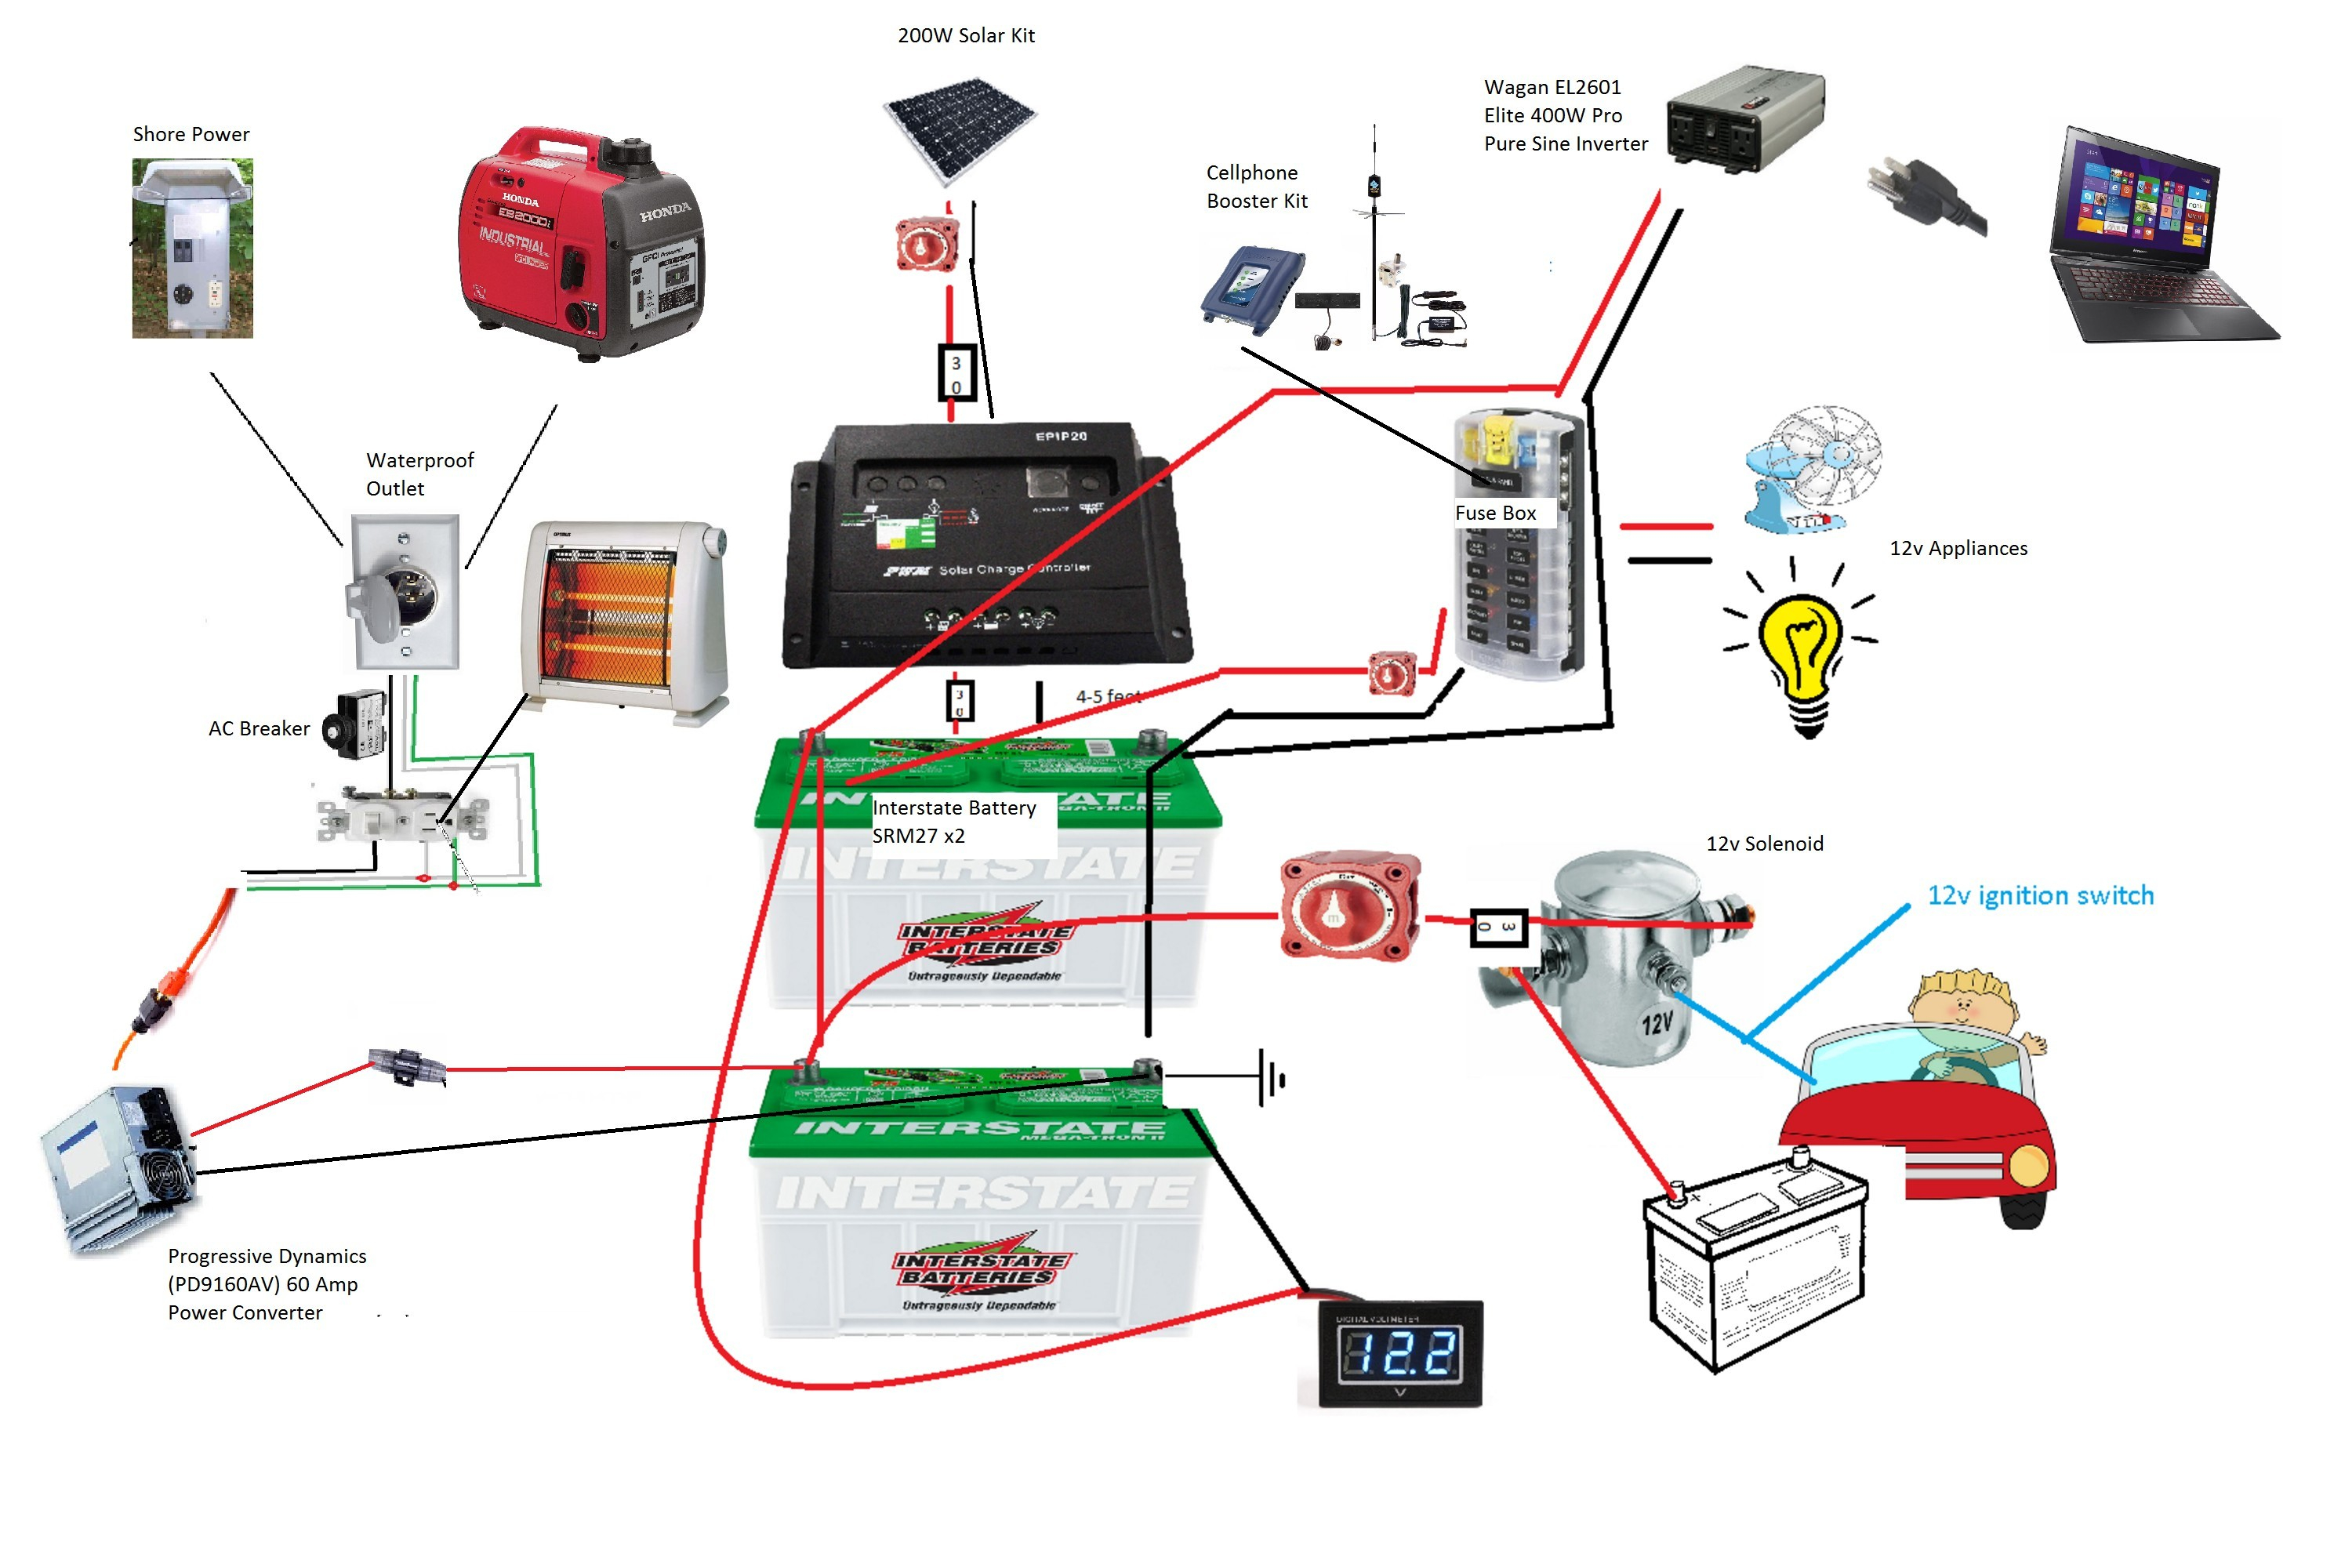 Camp Trailer Wiring - Today Wiring Diagram - 12 Volt Trailer Wiring Diagram